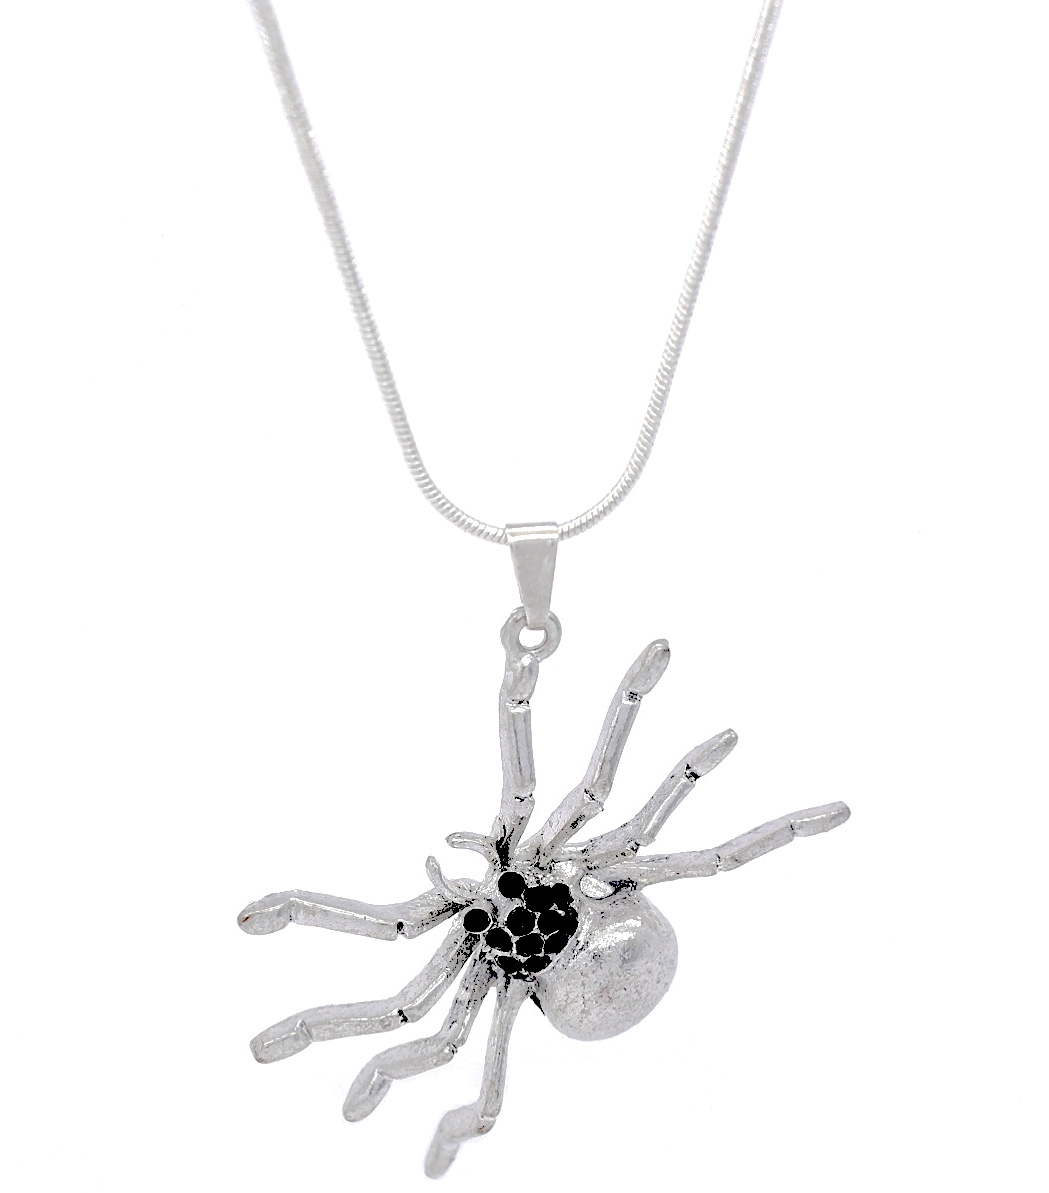 Vintage large black crystal spider pendant necklace aloadofball Image collections